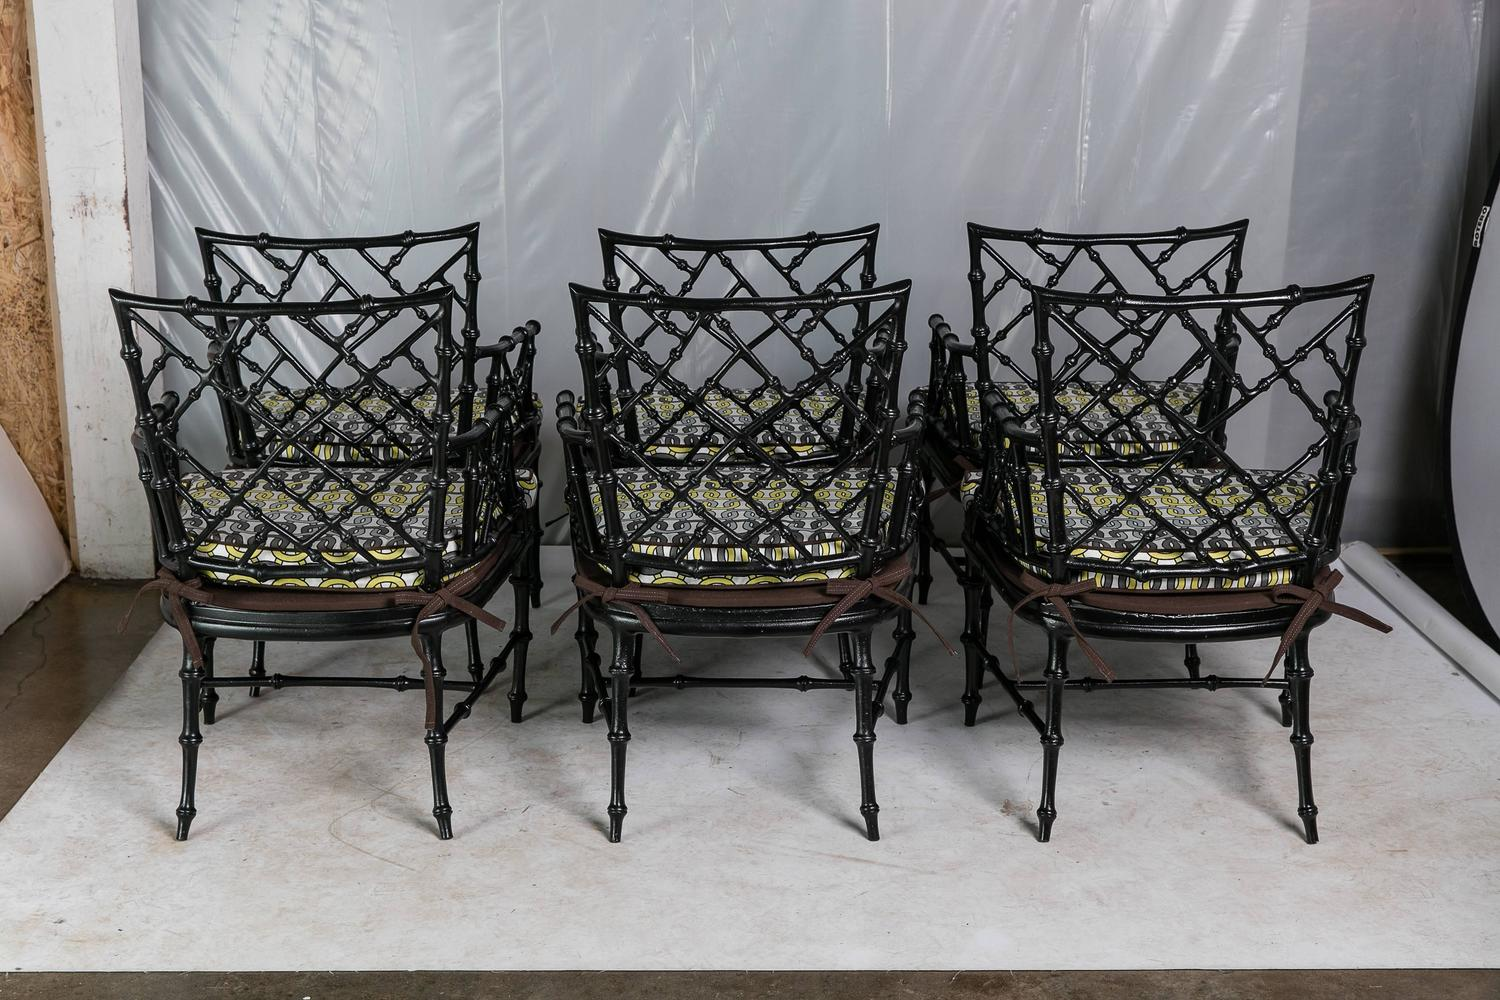 Faux Bamboo Metal Patio Chairs Set of Six For Sale at 1stdibs